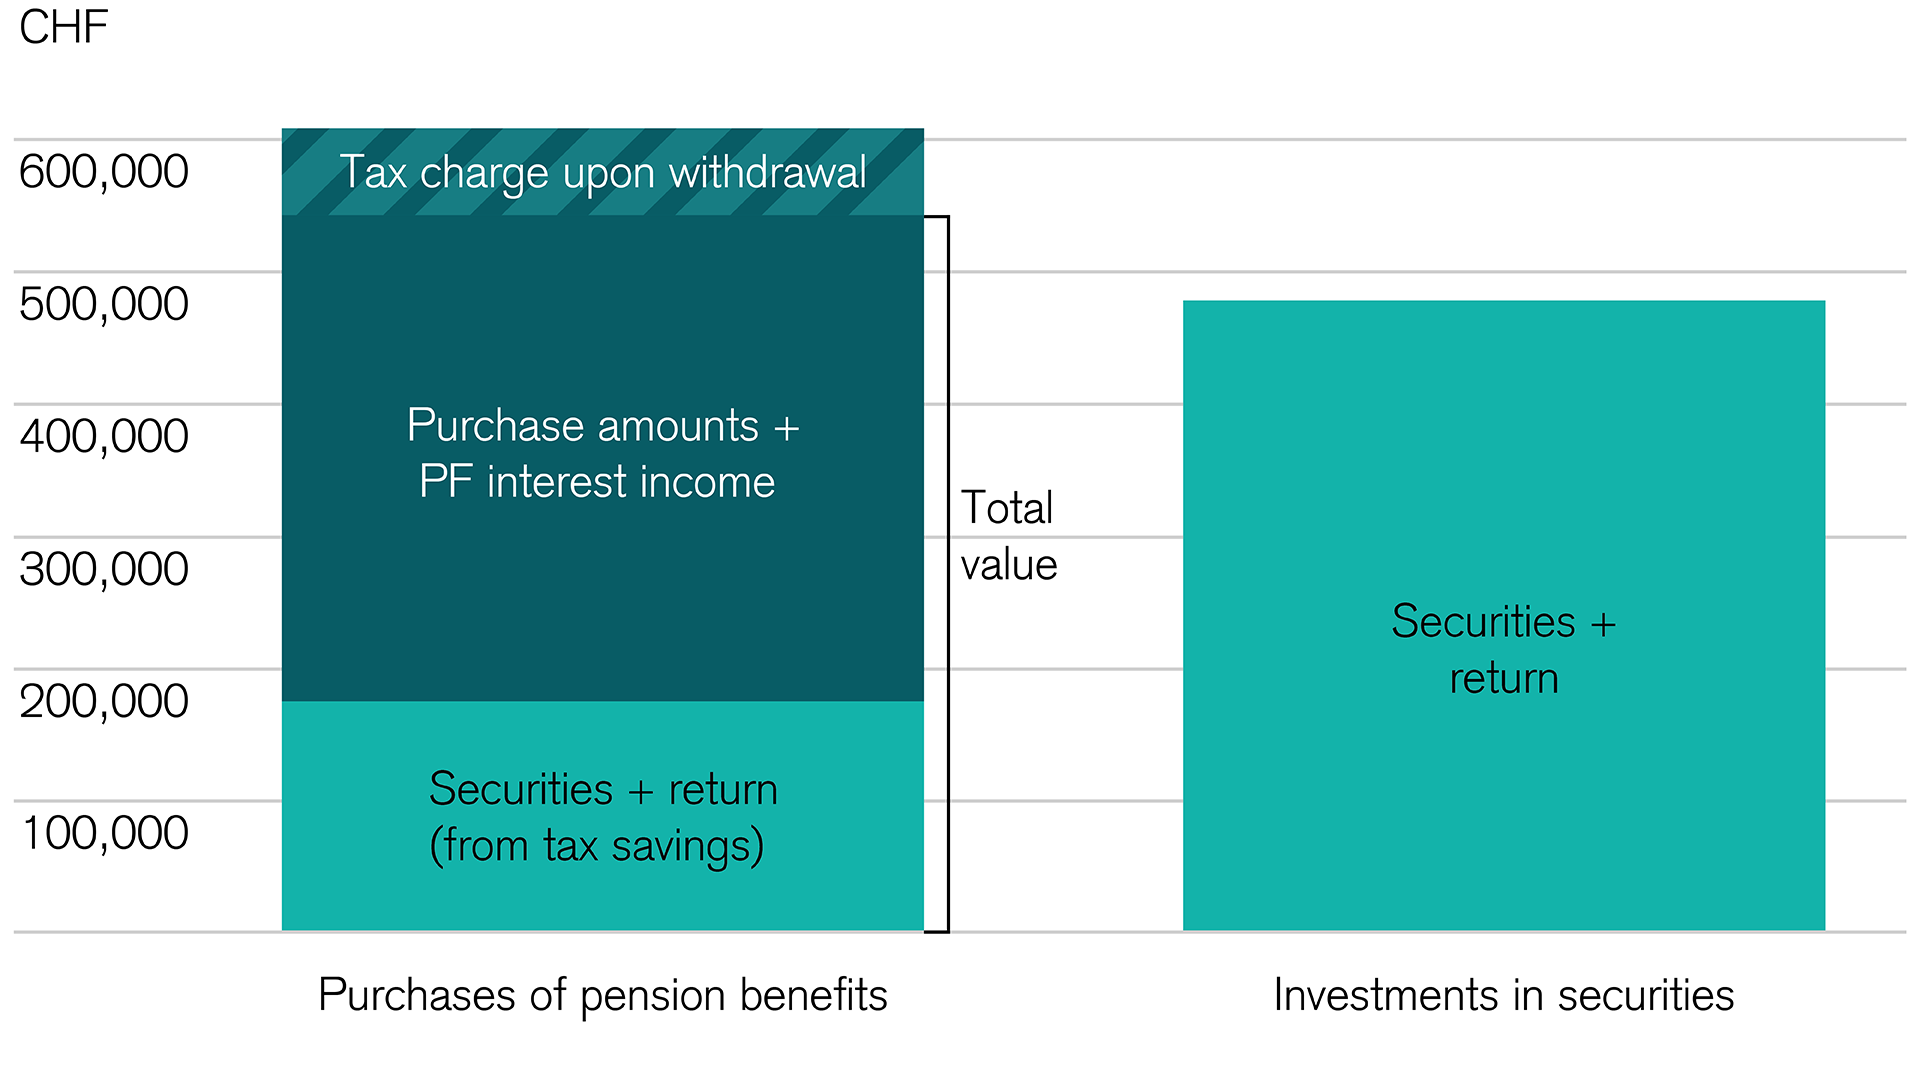 Purchasing pension benefits is attractive